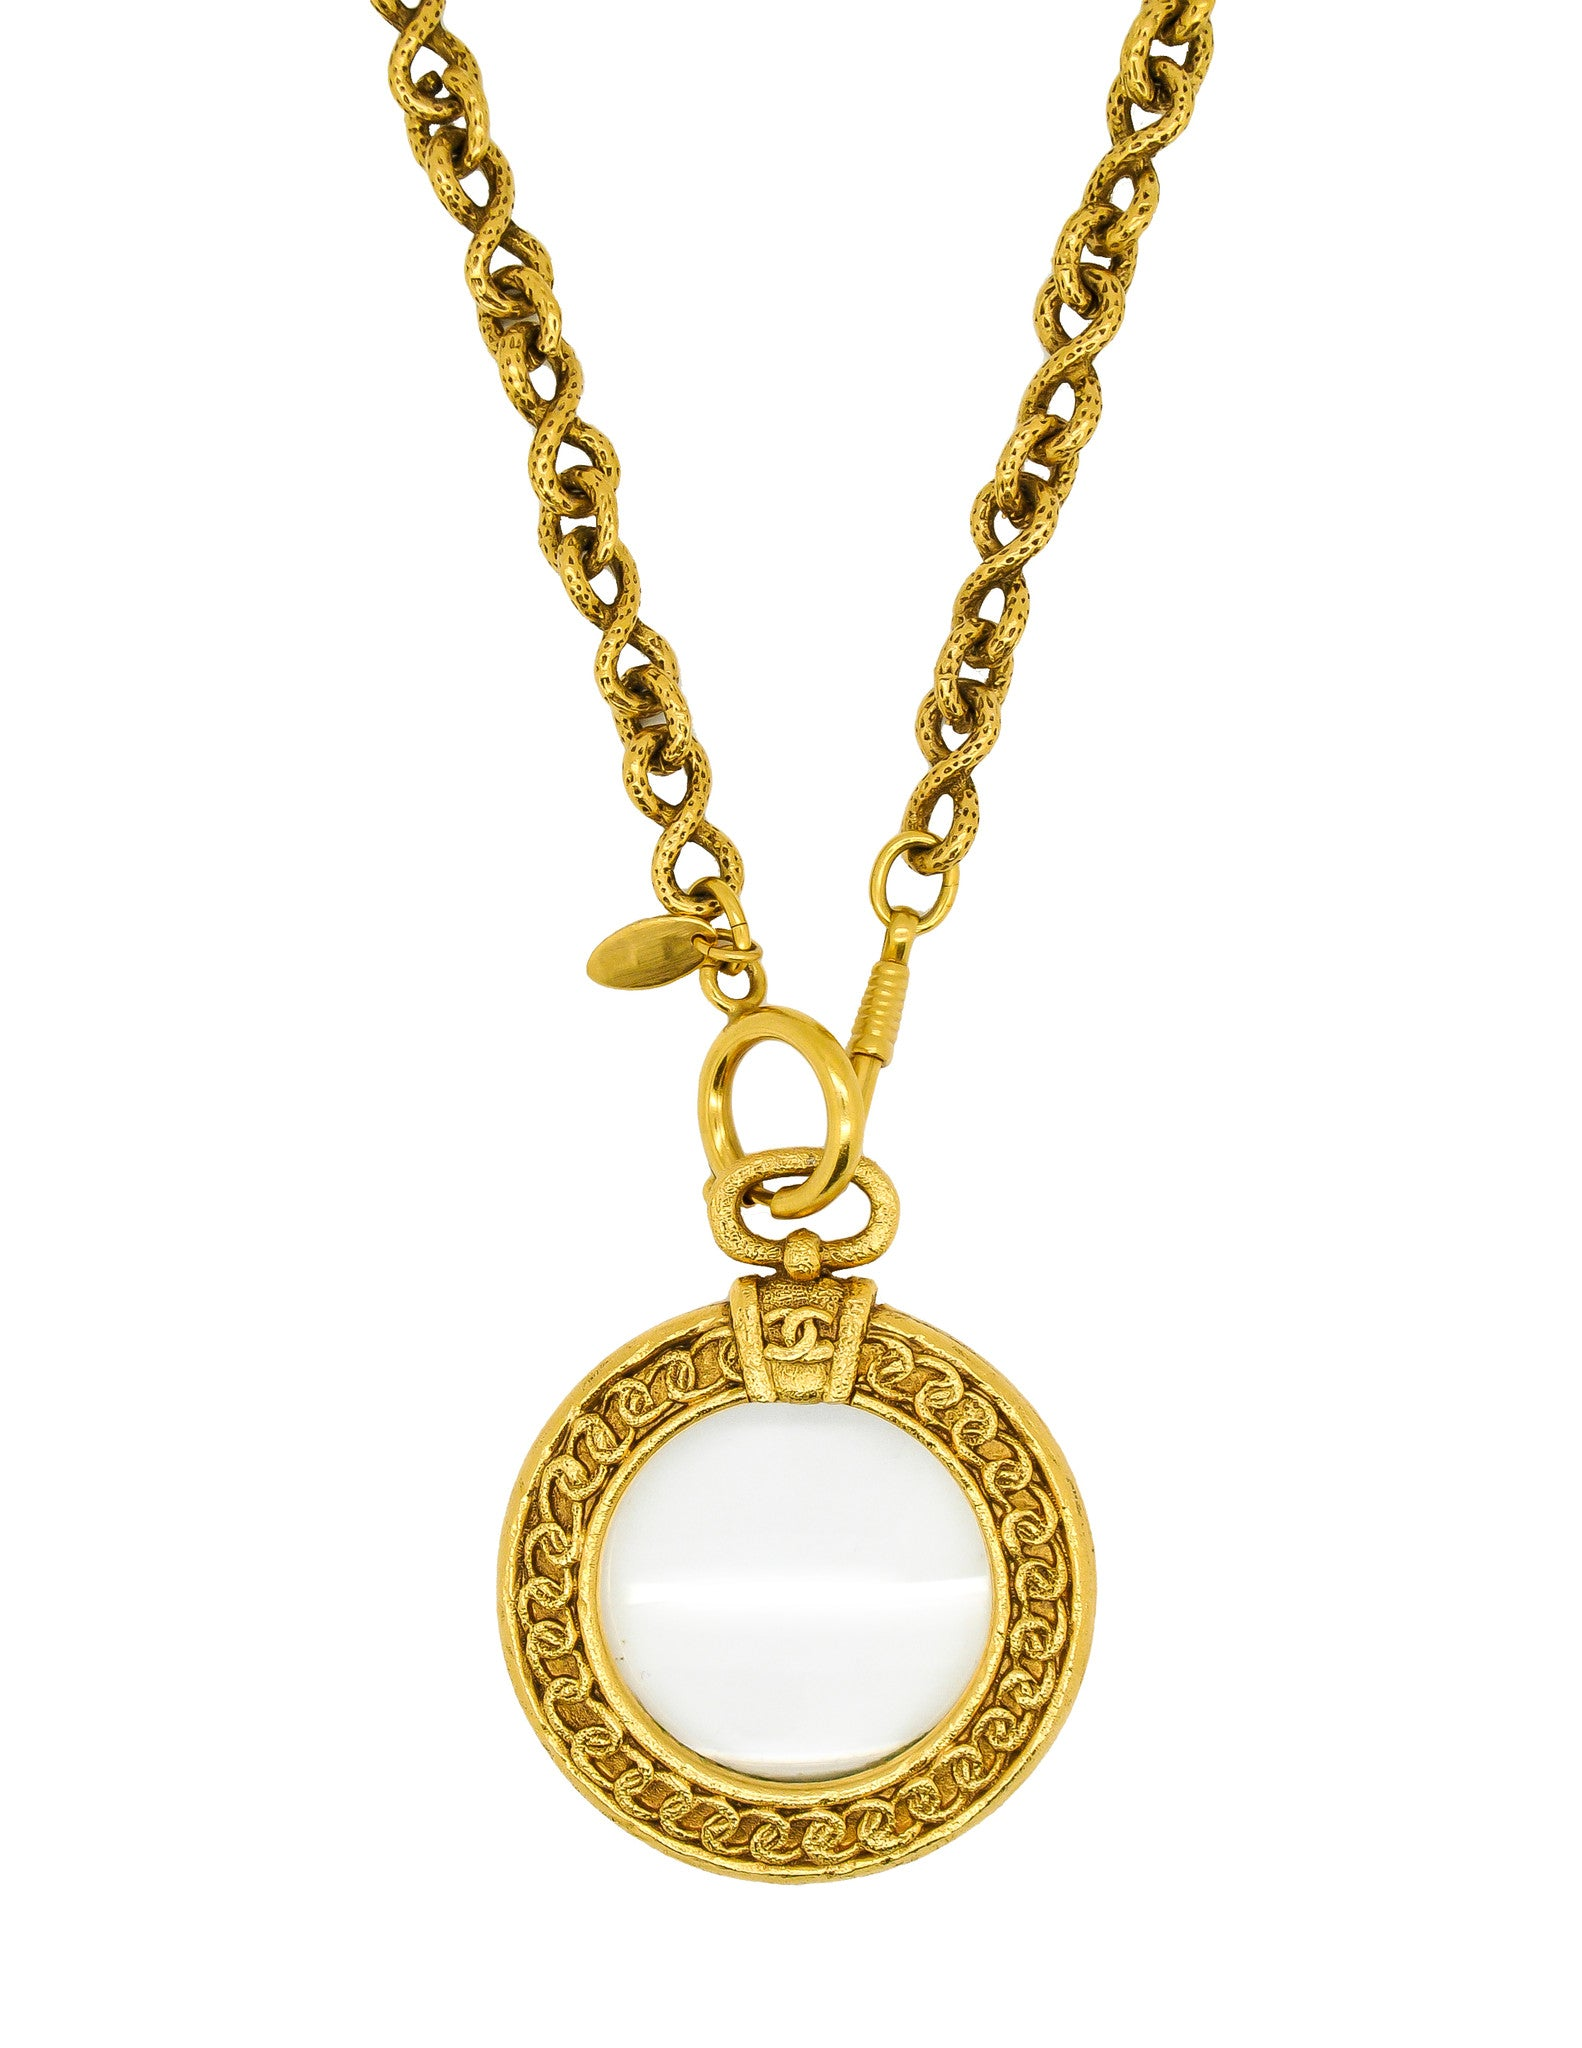 Chanel Vintage Gold Magnifying Glass Loupe Necklace - Amarcord Vintage Fashion  - 1